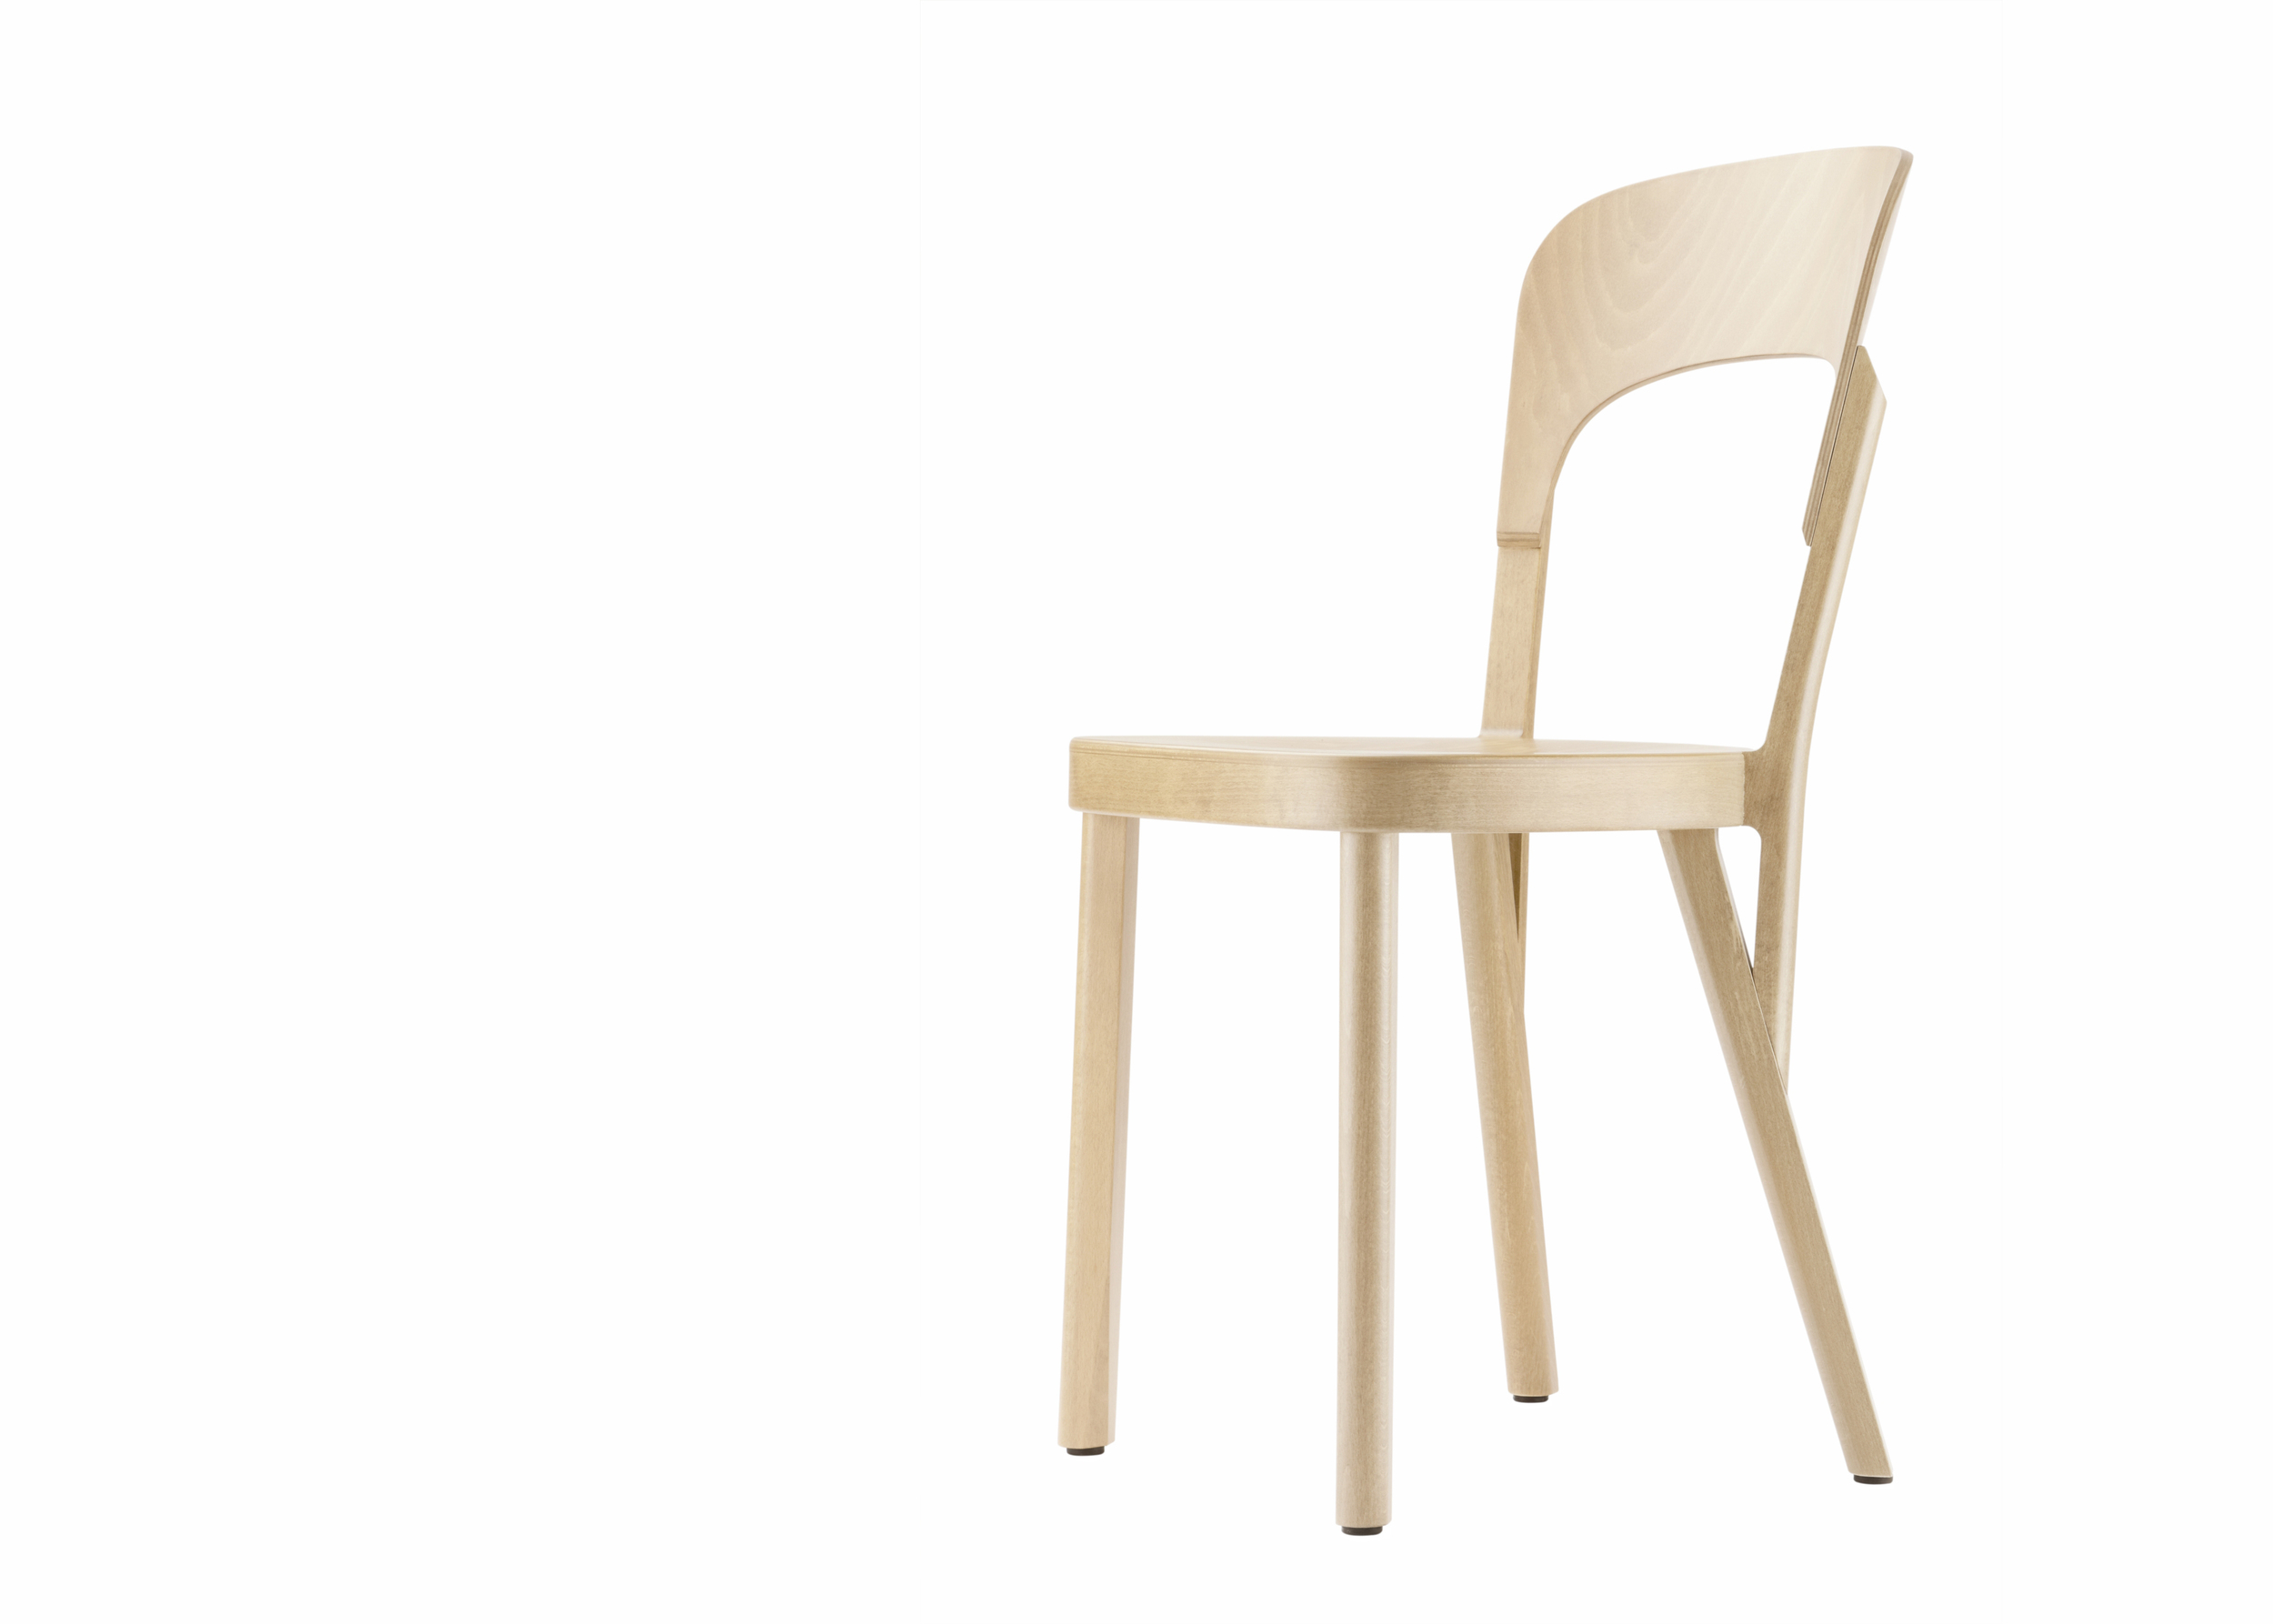 107 Chair by Robert Stadler -  starting price $450 LIST